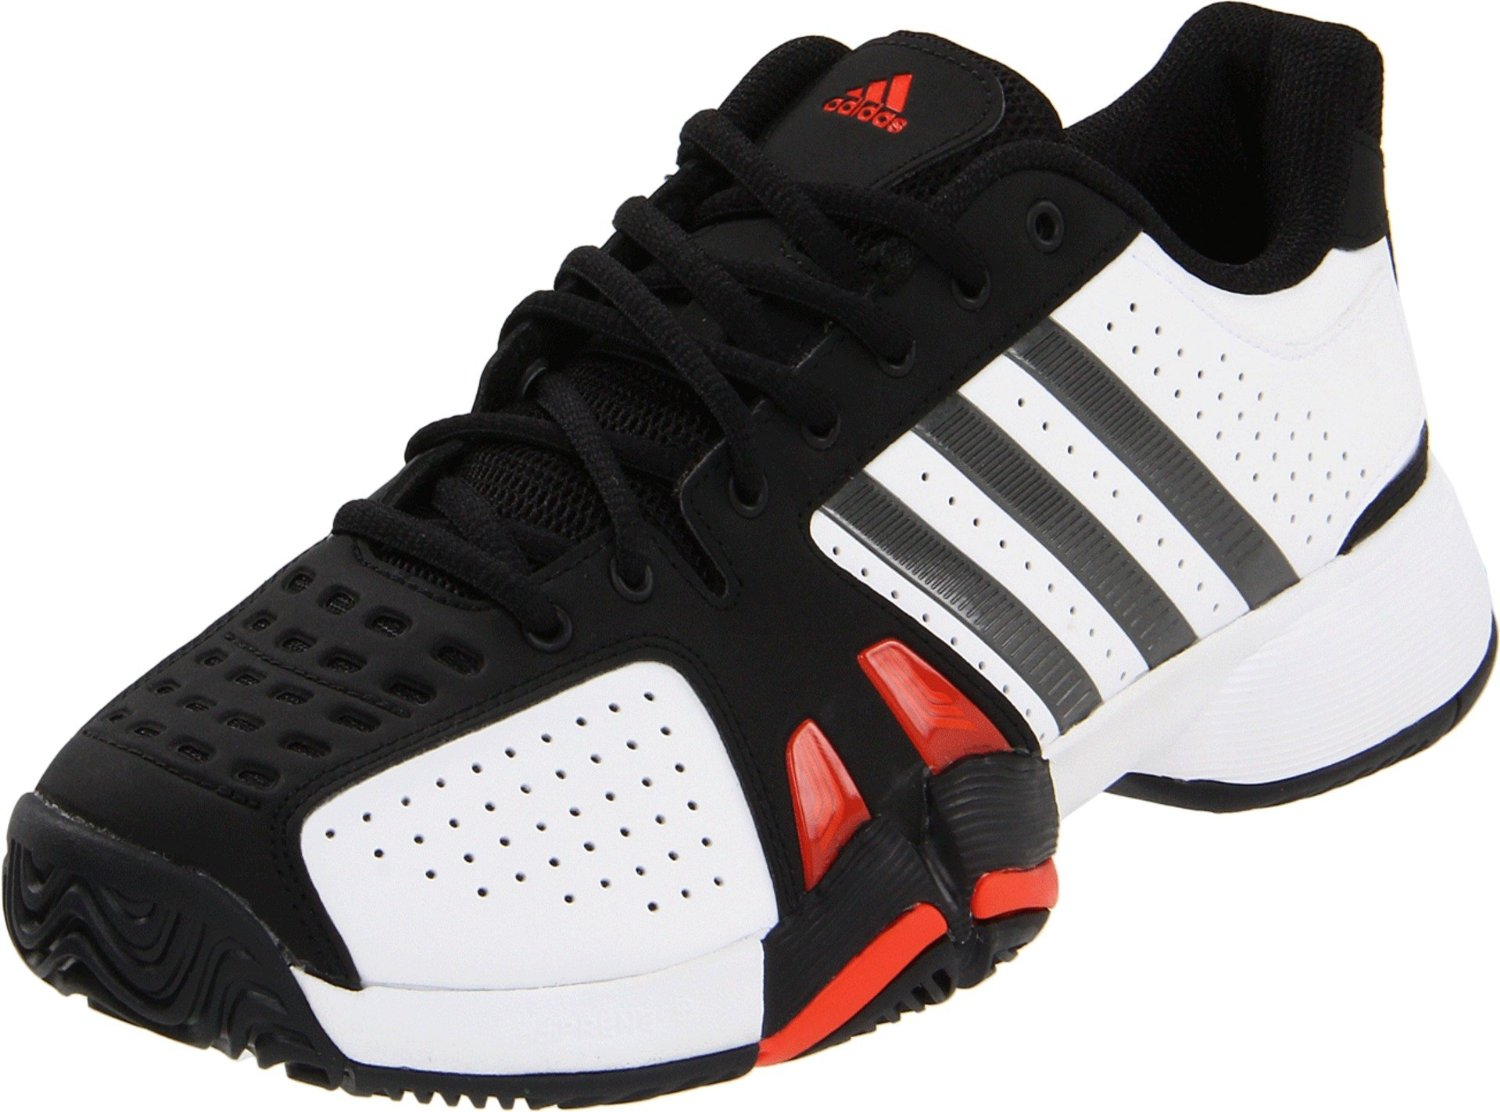 How Expensive Can Adidas Shoes Get